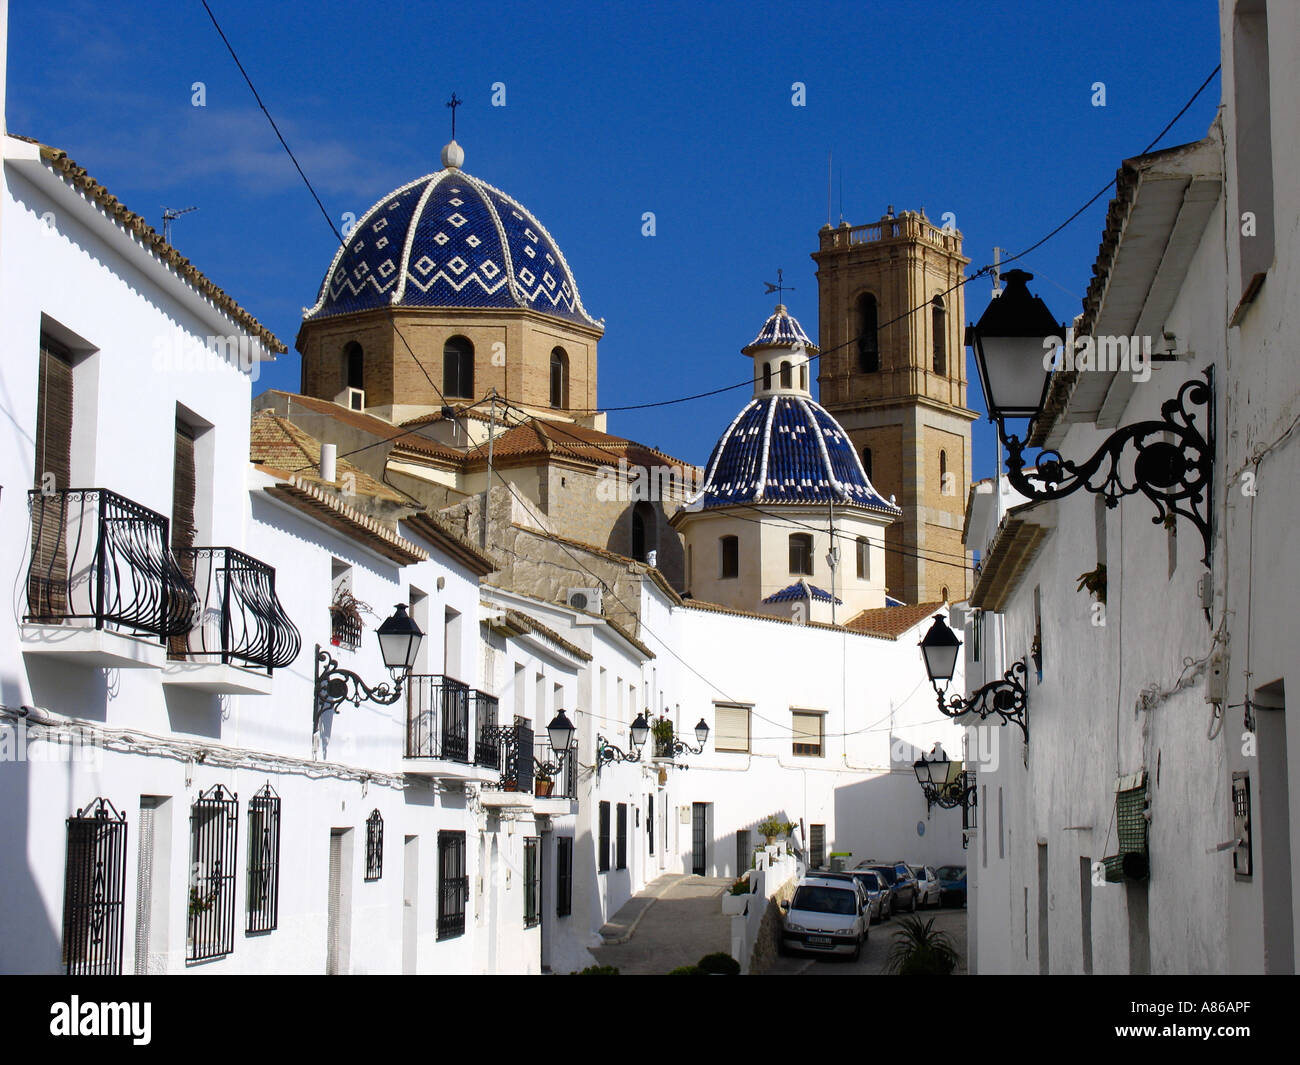 The old town of Altea at the Costa Blanca with the wellknown dome church Stock Photo